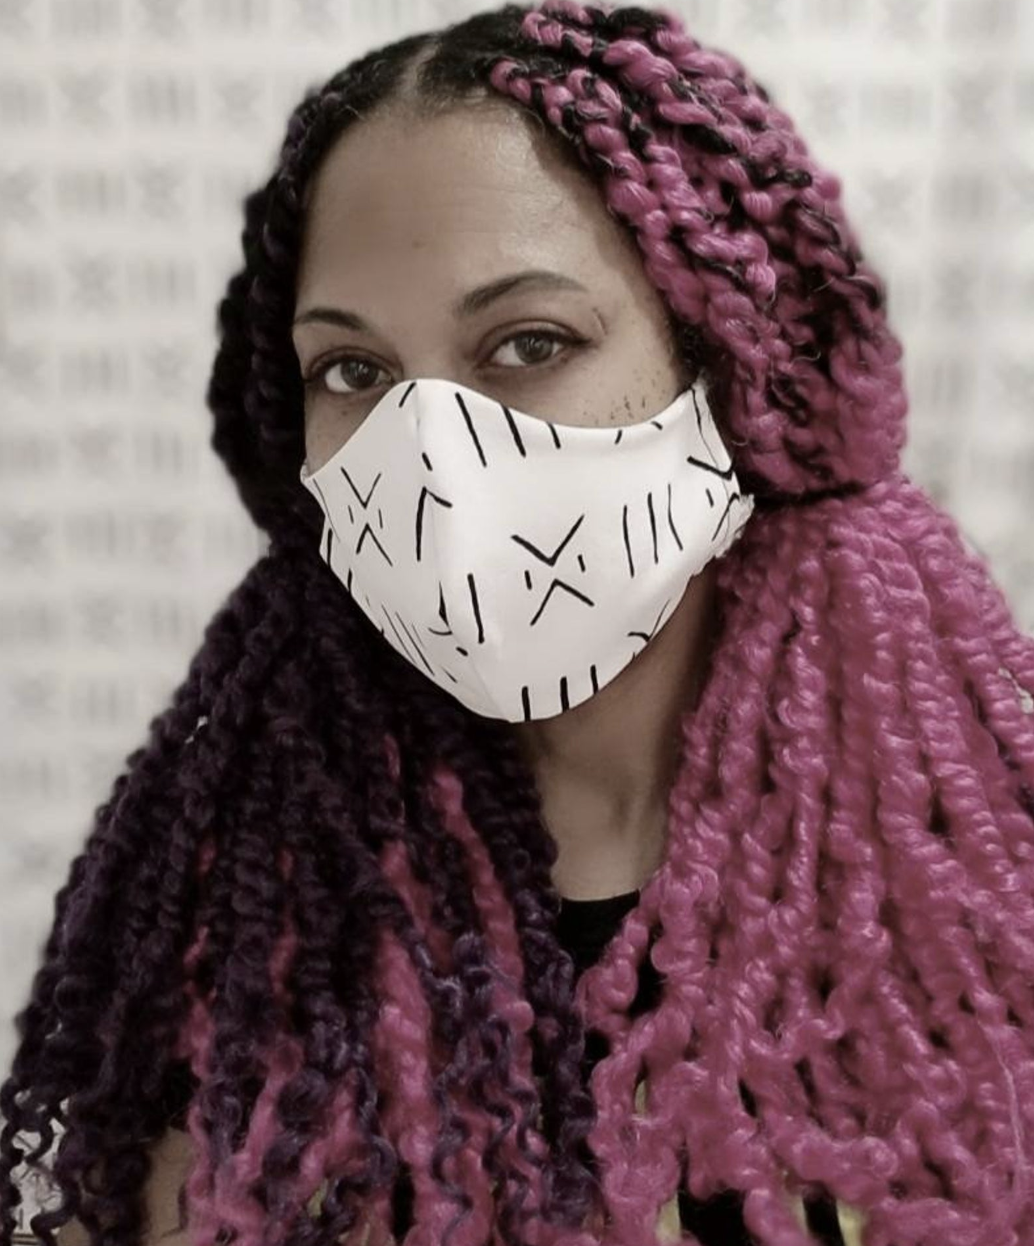 A model in a white and black patterned face mask